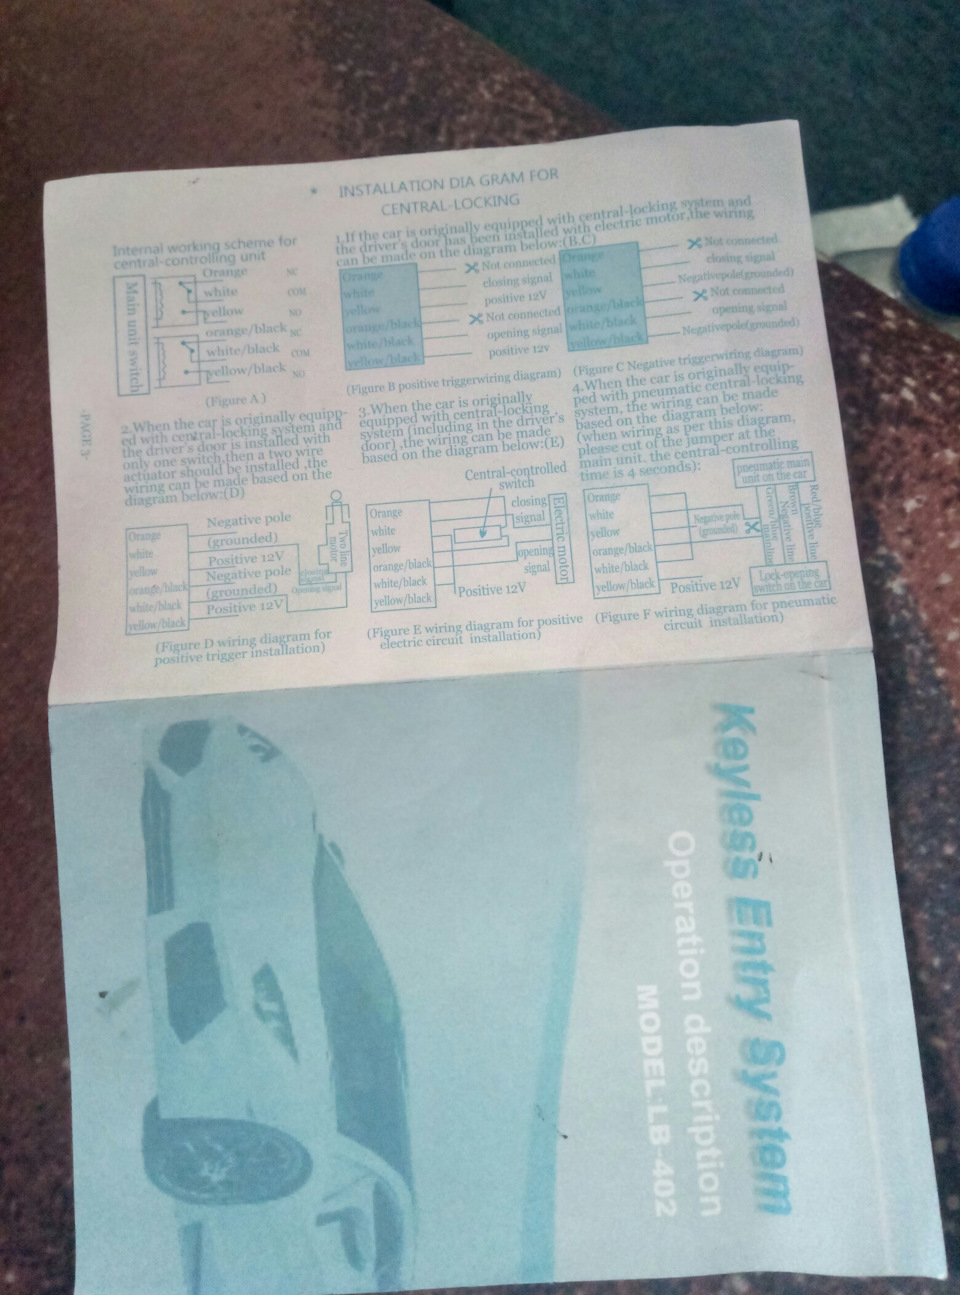 Logbook Nissan Almera Angry Bird 1998 On Drive2 Central Locking Wiring Diagram N15 98